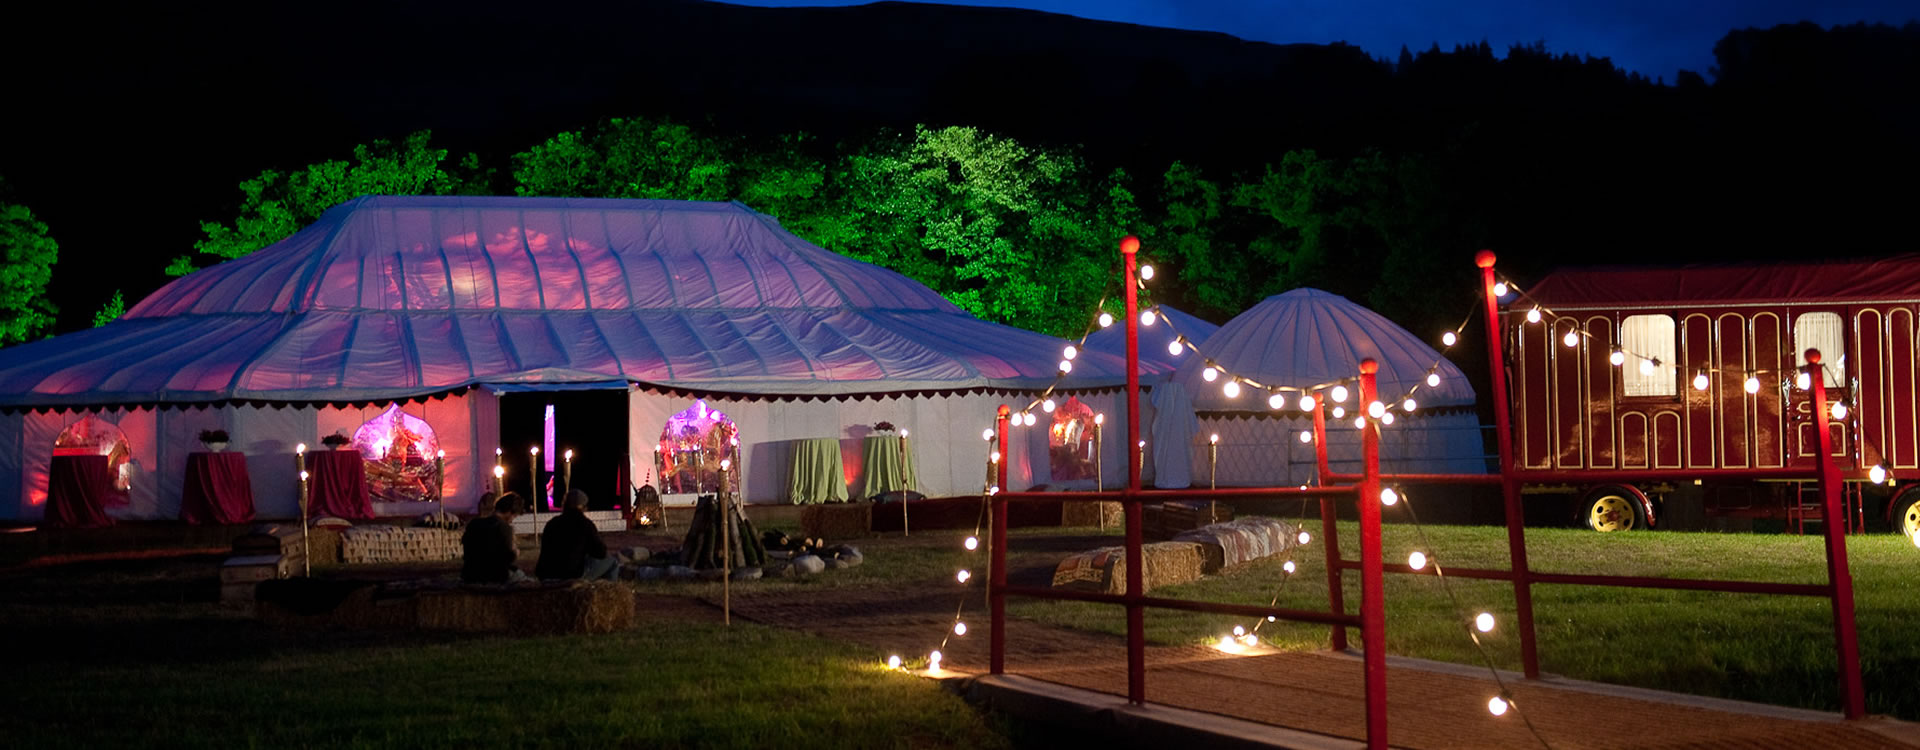 full-width-home-4 & Tent and marquee hire manufacture u0026 sales across the UK Ireland ...